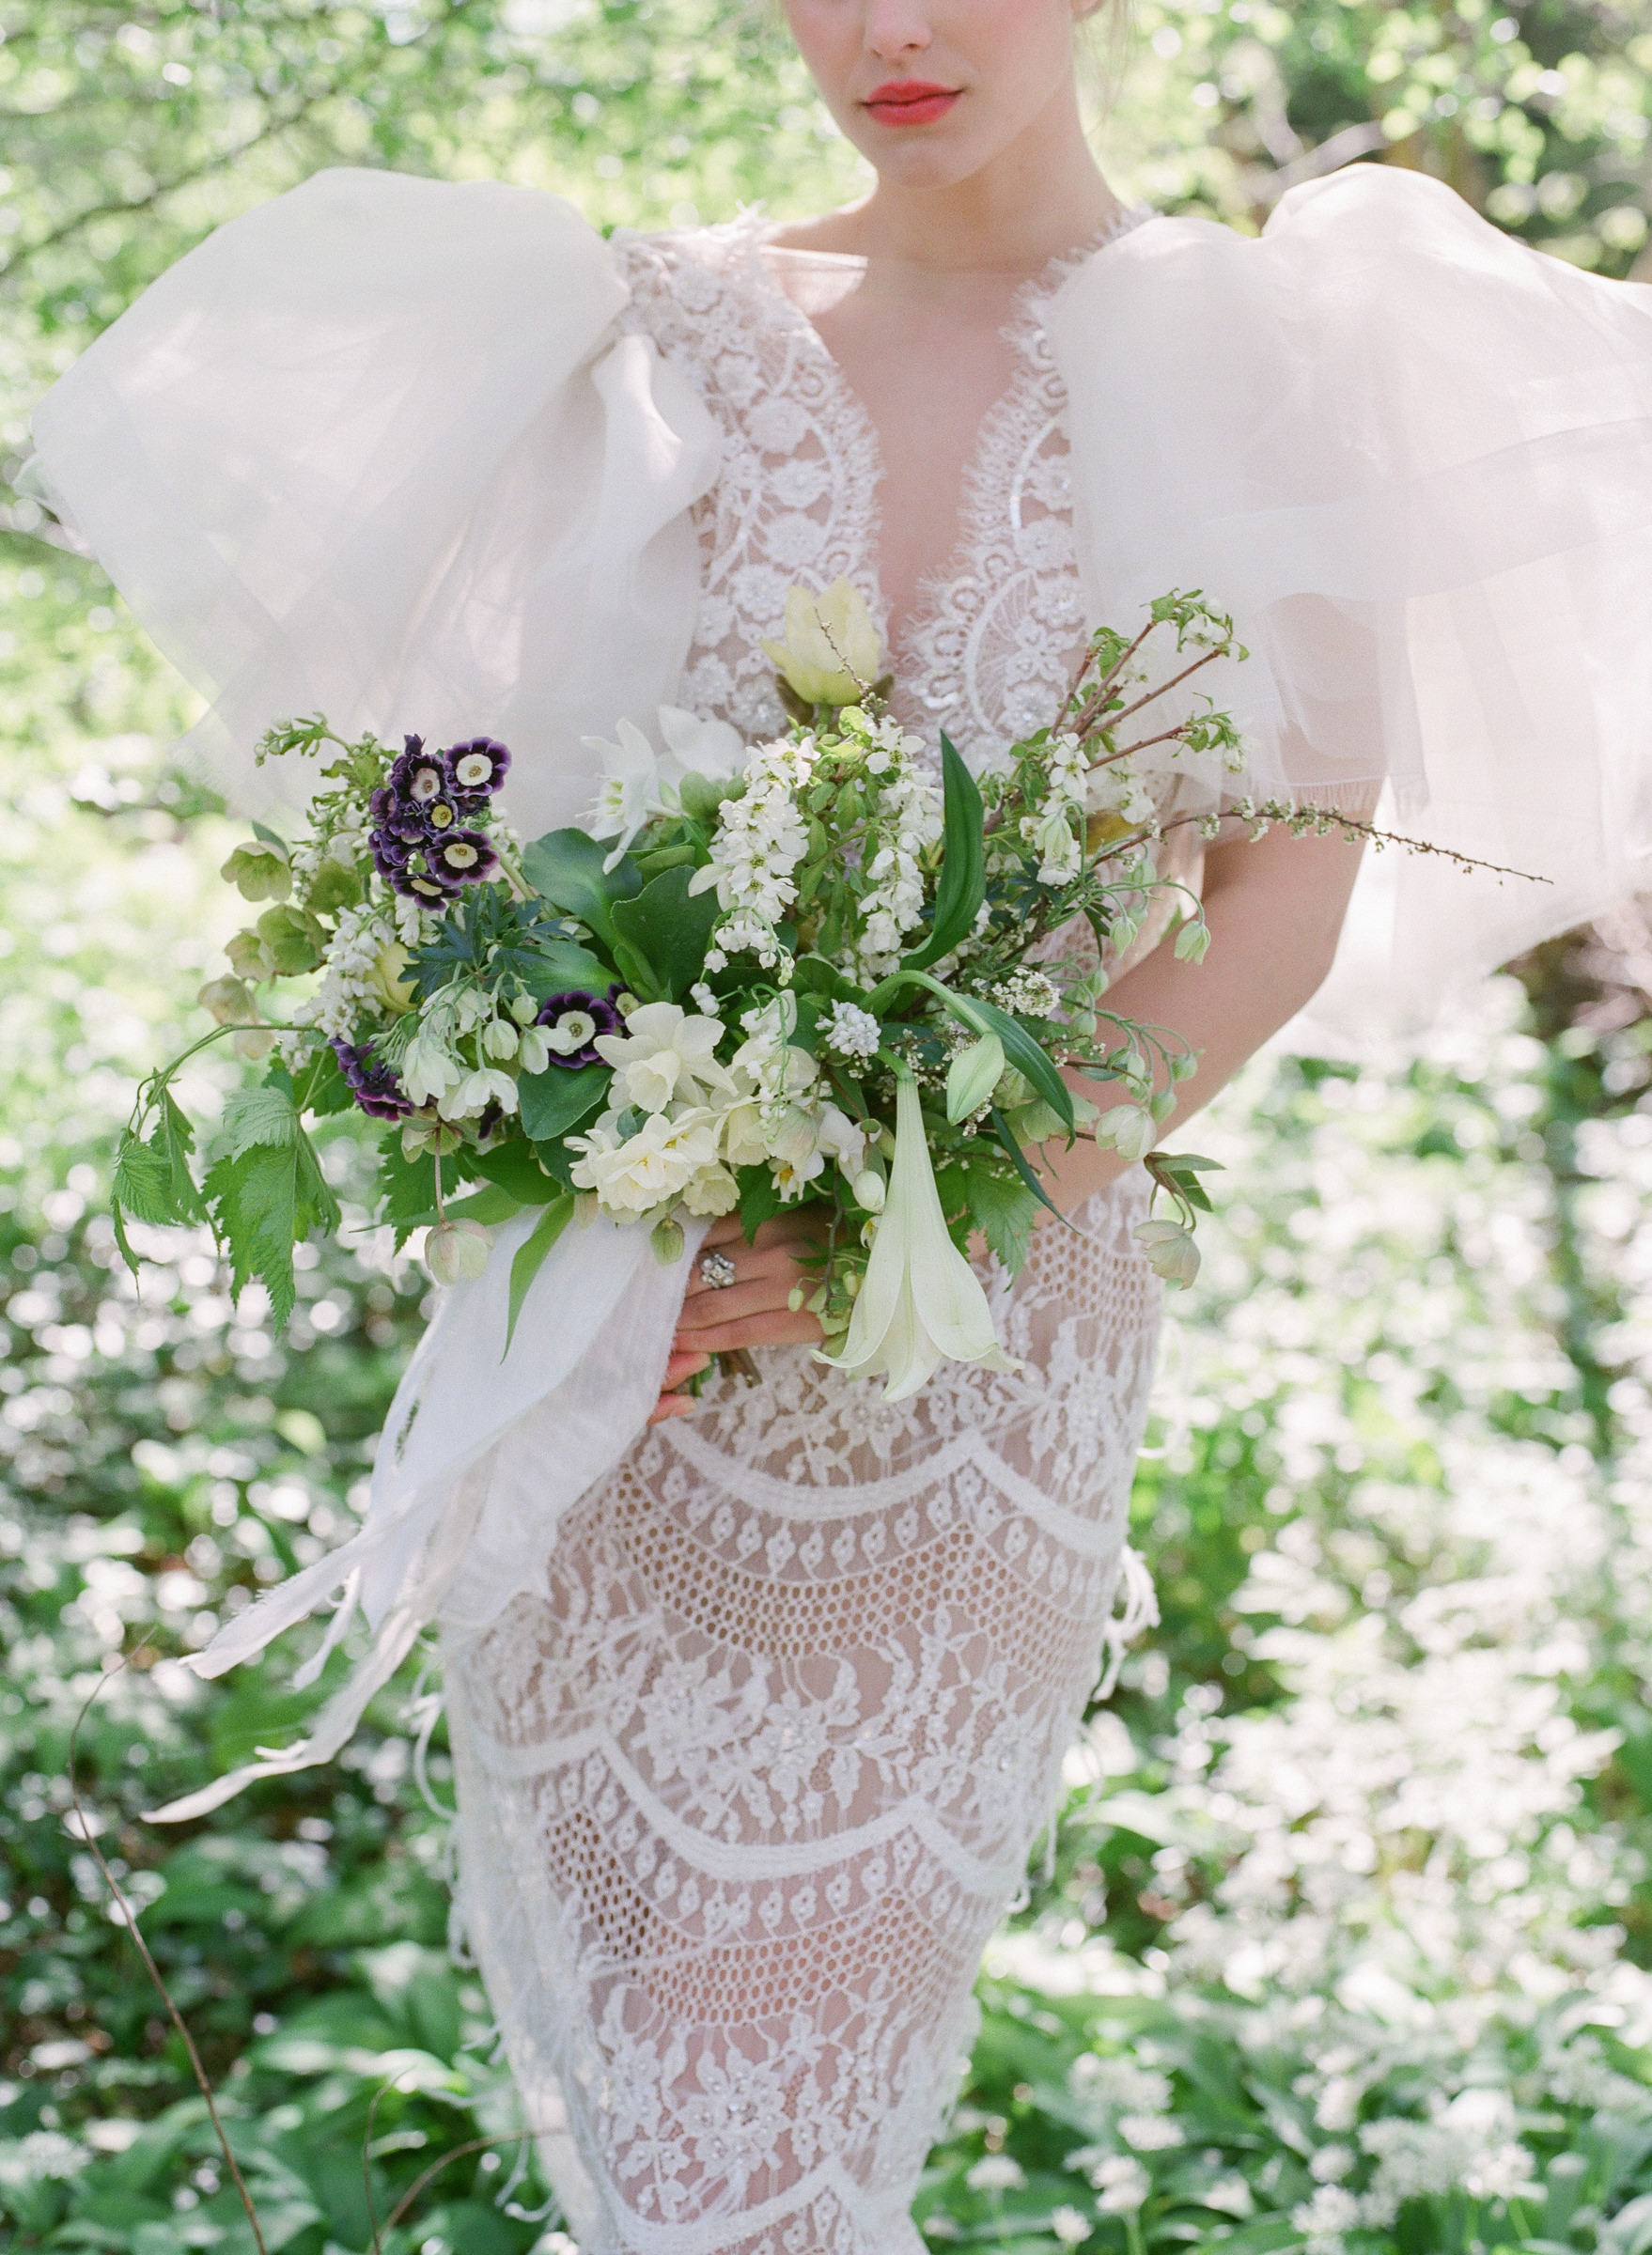 Bride with ballon sleeve lace gown and spring bouquet - photo by Corbin Gurkin